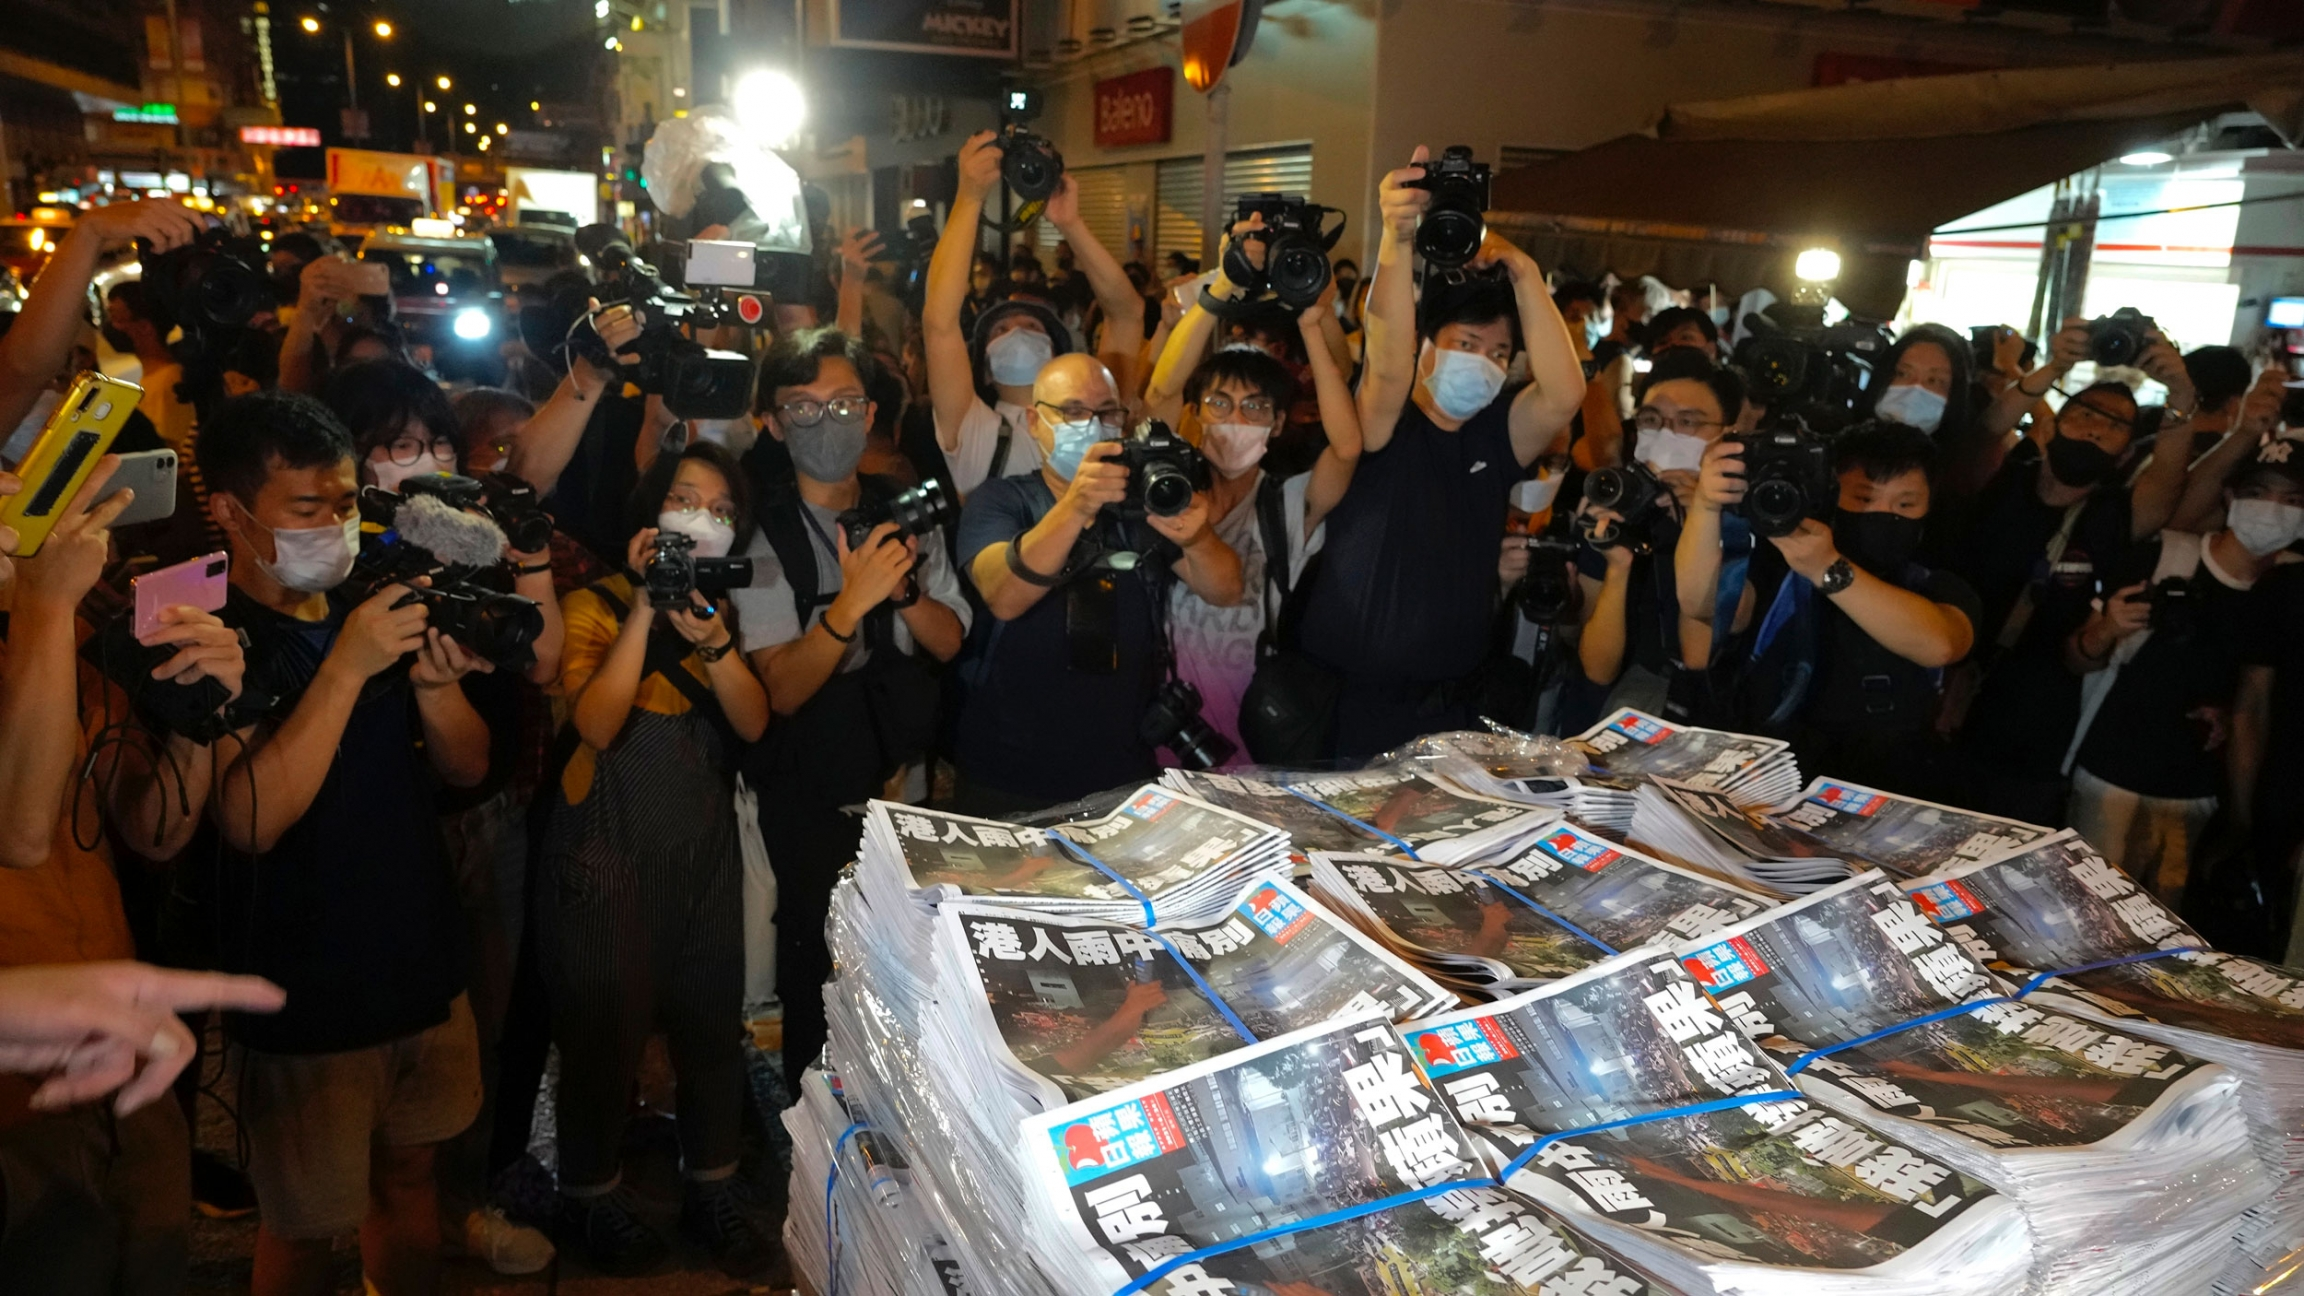 Several stacks of the last edition of the Apple Daily newspaper are shown a group of photographers in the background.